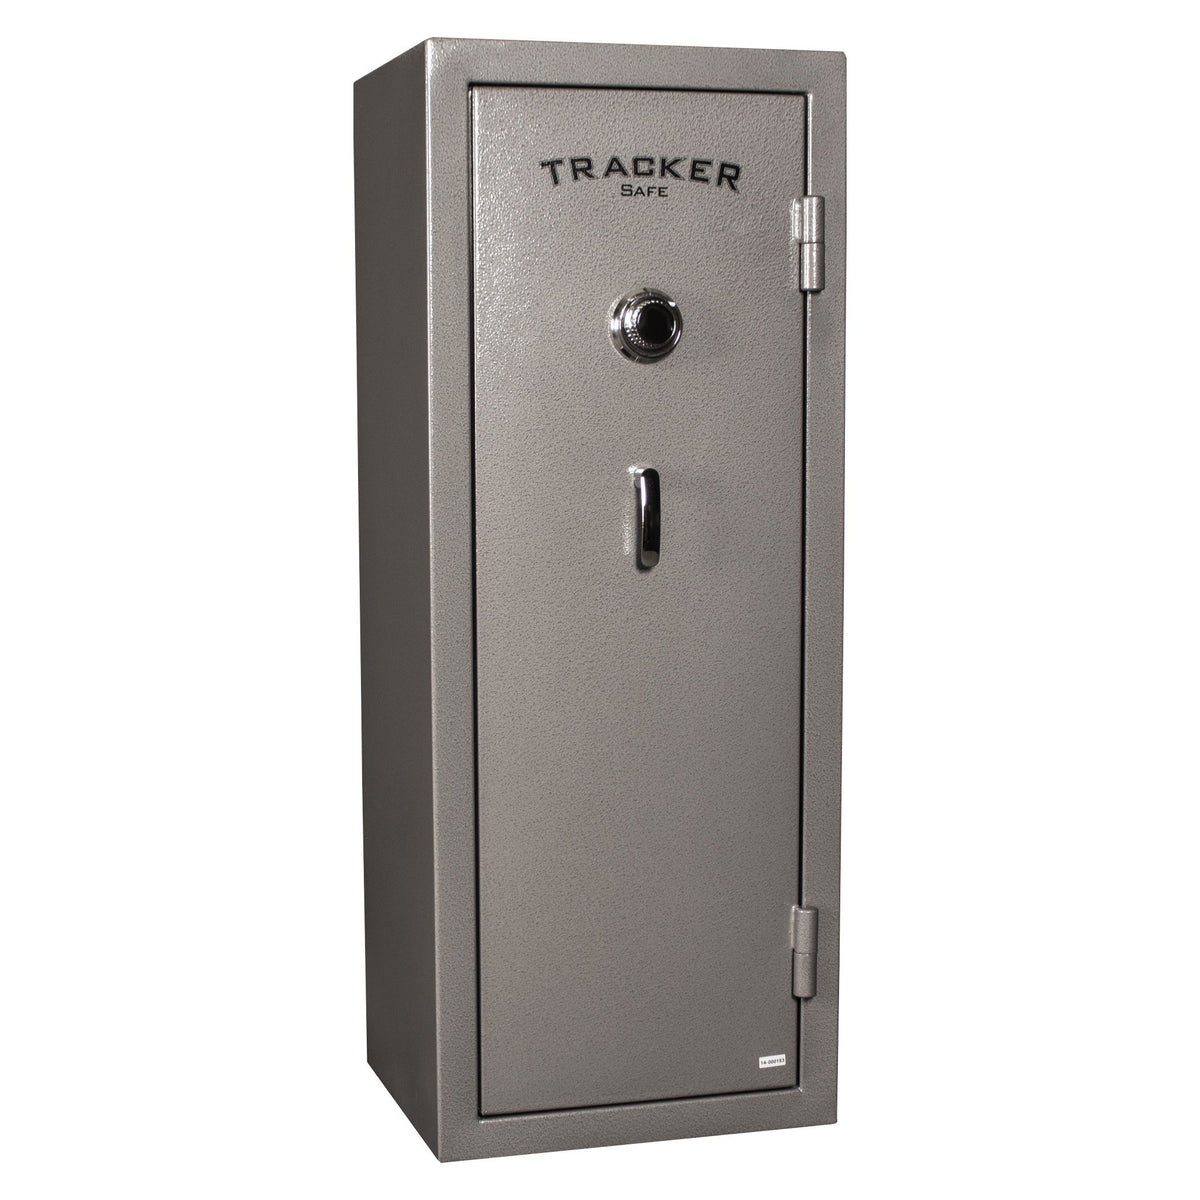 Tracker Safe TS14 Gun & Rifle Safe